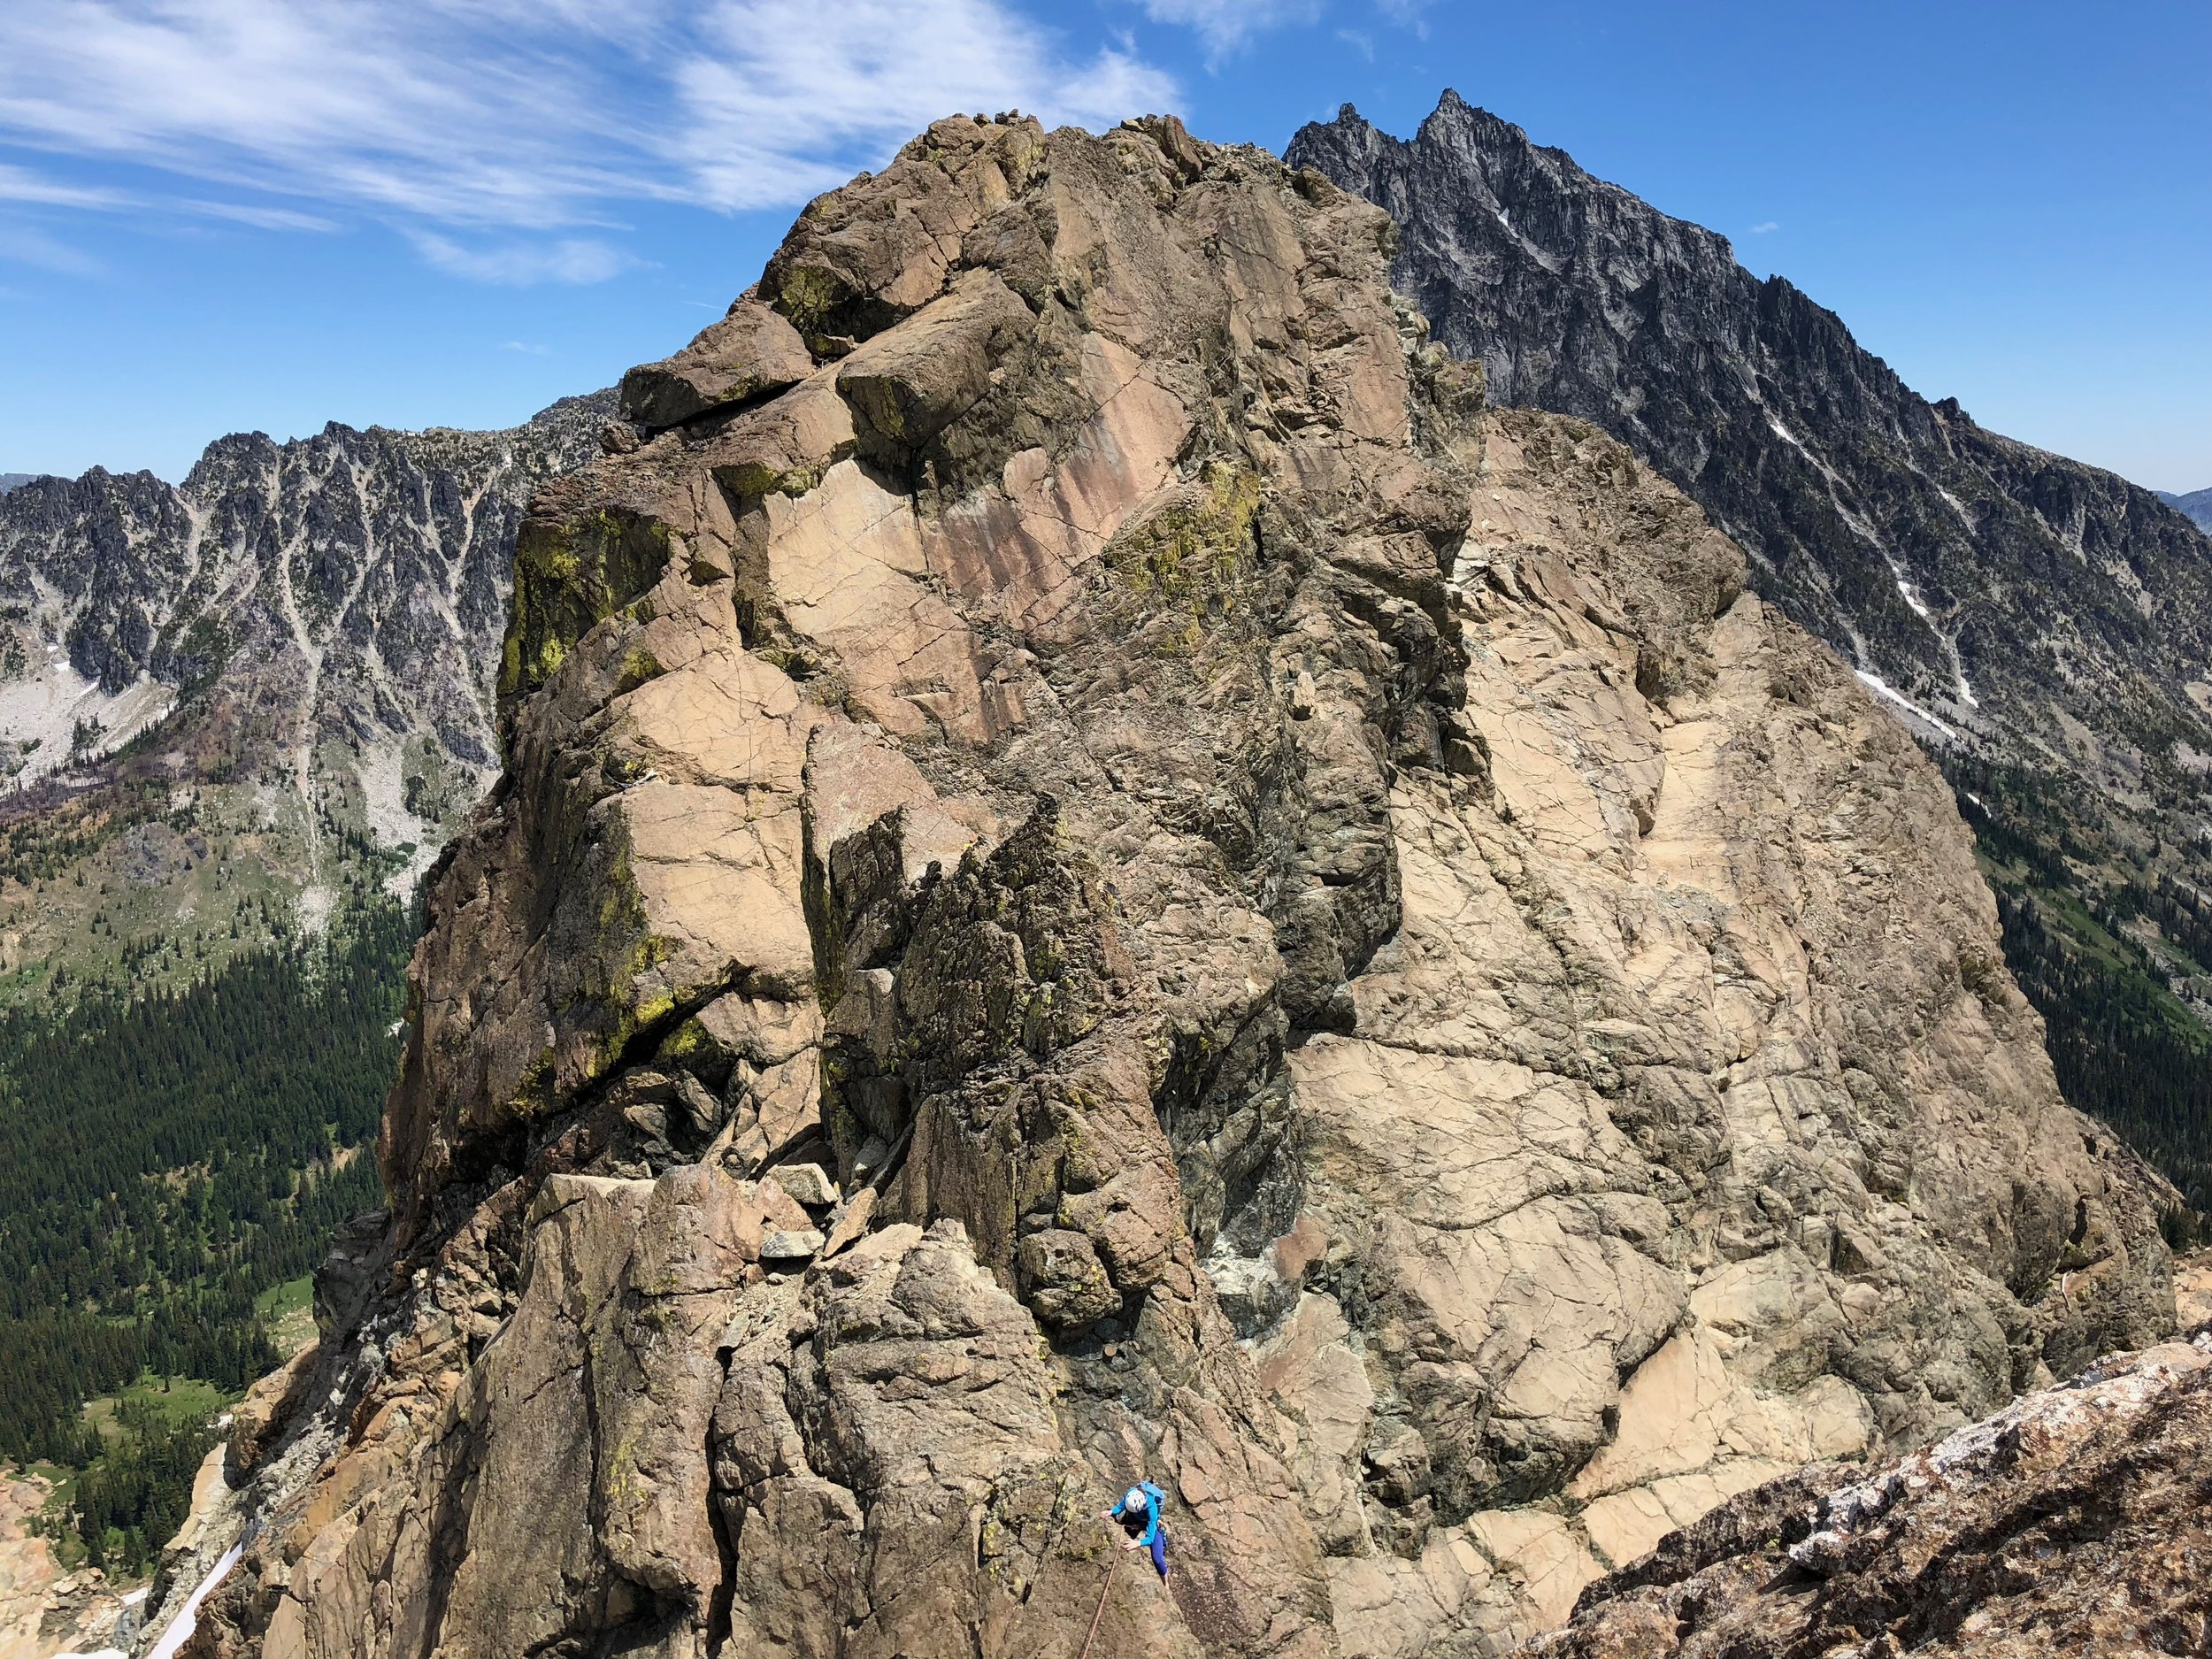 Down-climbing on the second pitch of the East Ridge